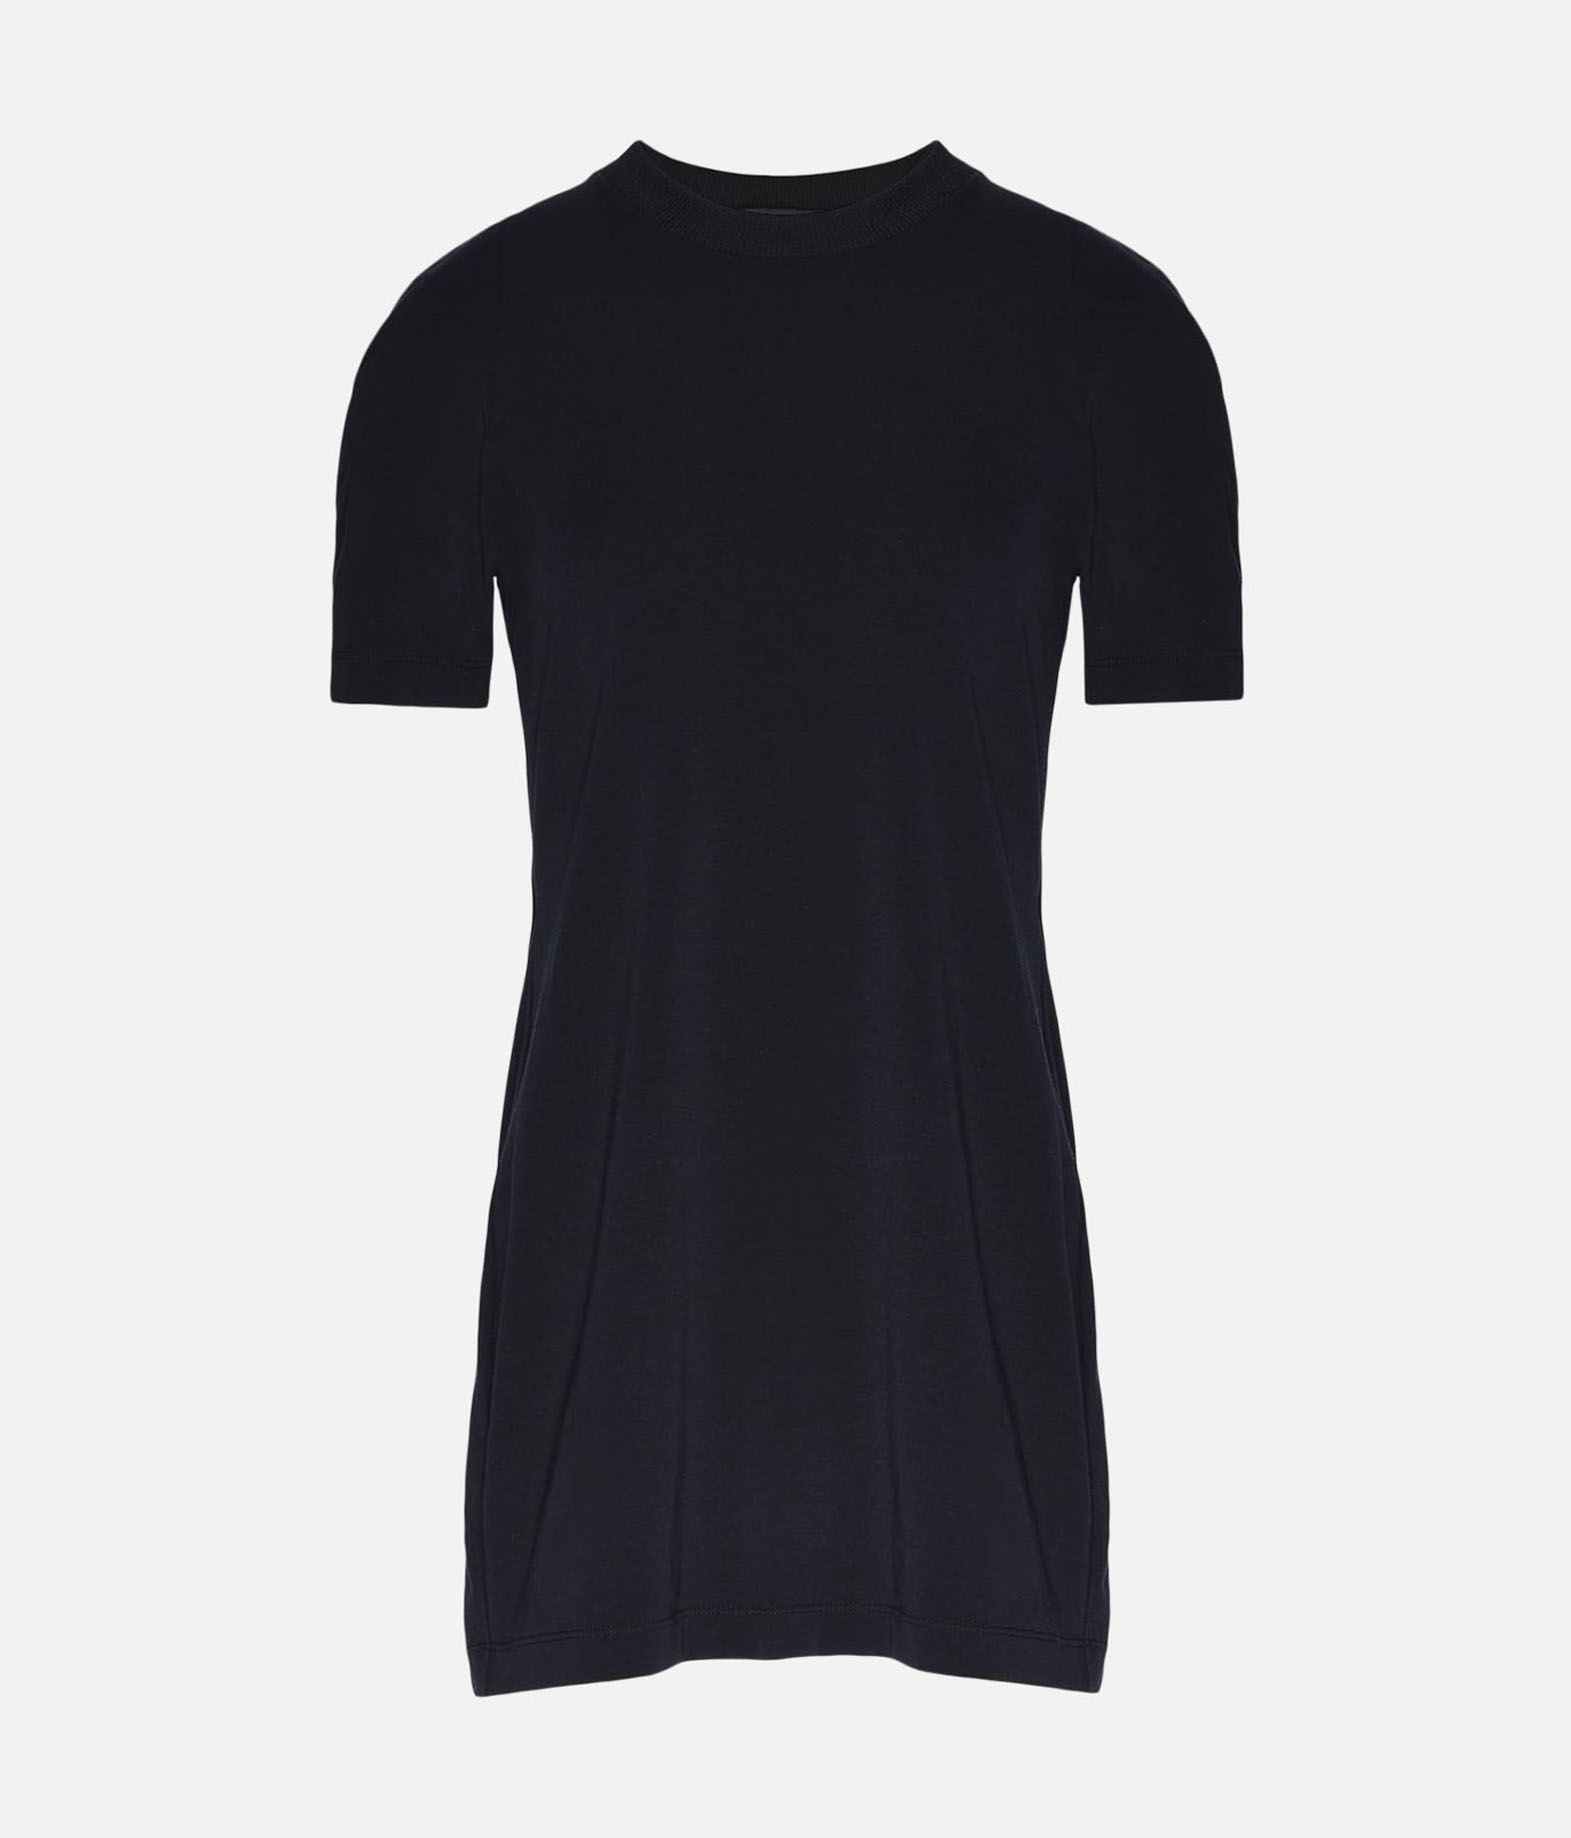 Y-3 Y-3 Prime Tee Short sleeve t-shirt Woman f